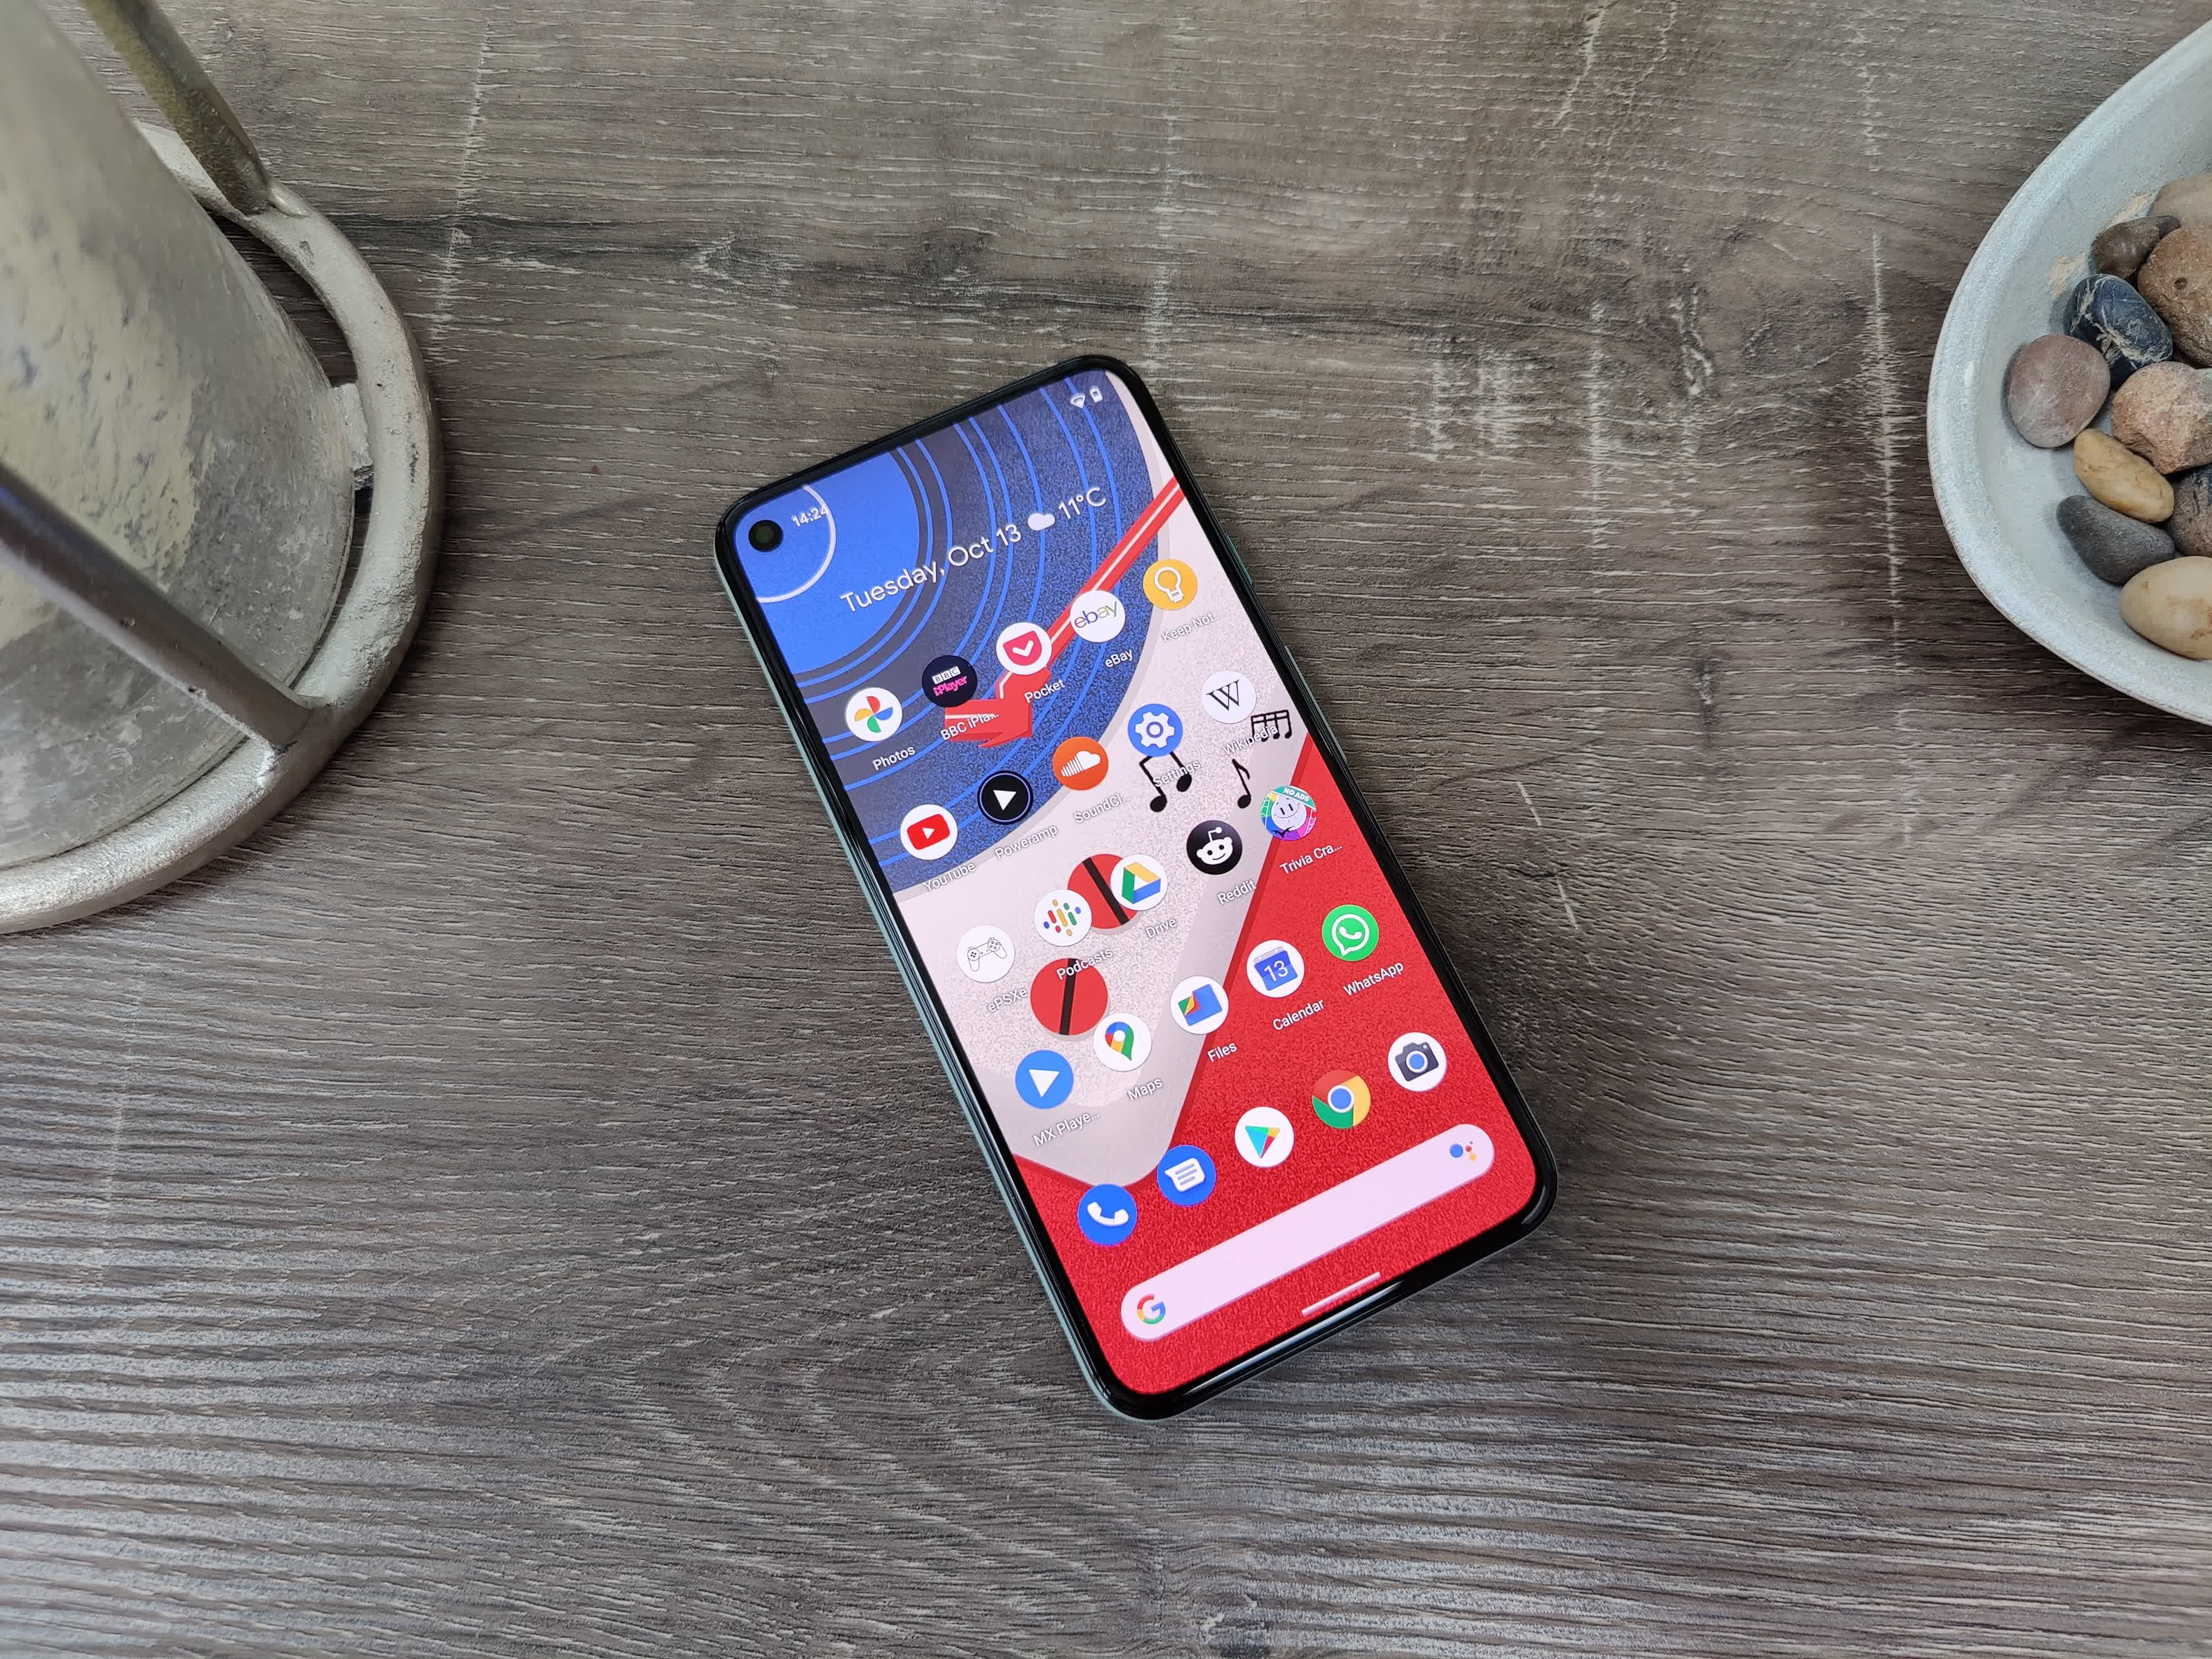 Google's Pixel 5 is reportedly suffering from build quality issues